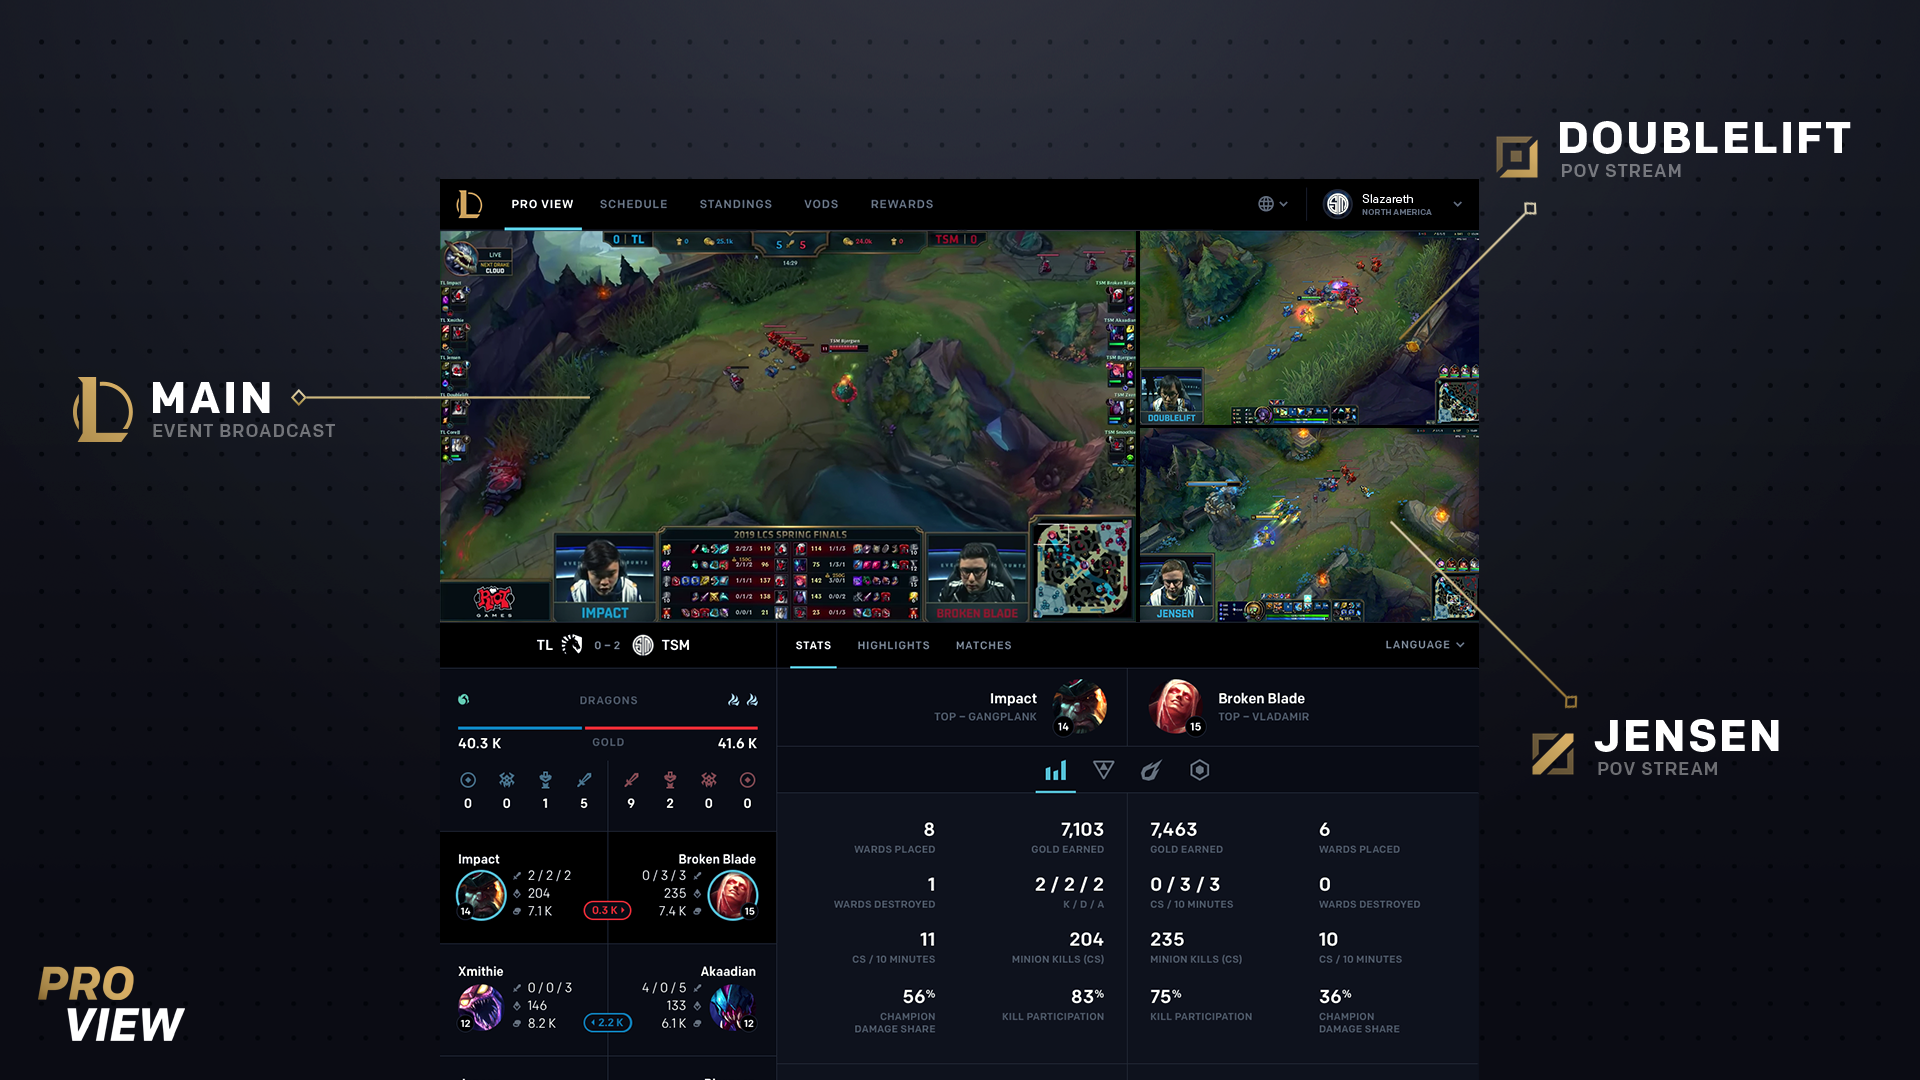 Pro View: Leveling up the Esports Viewing Experience